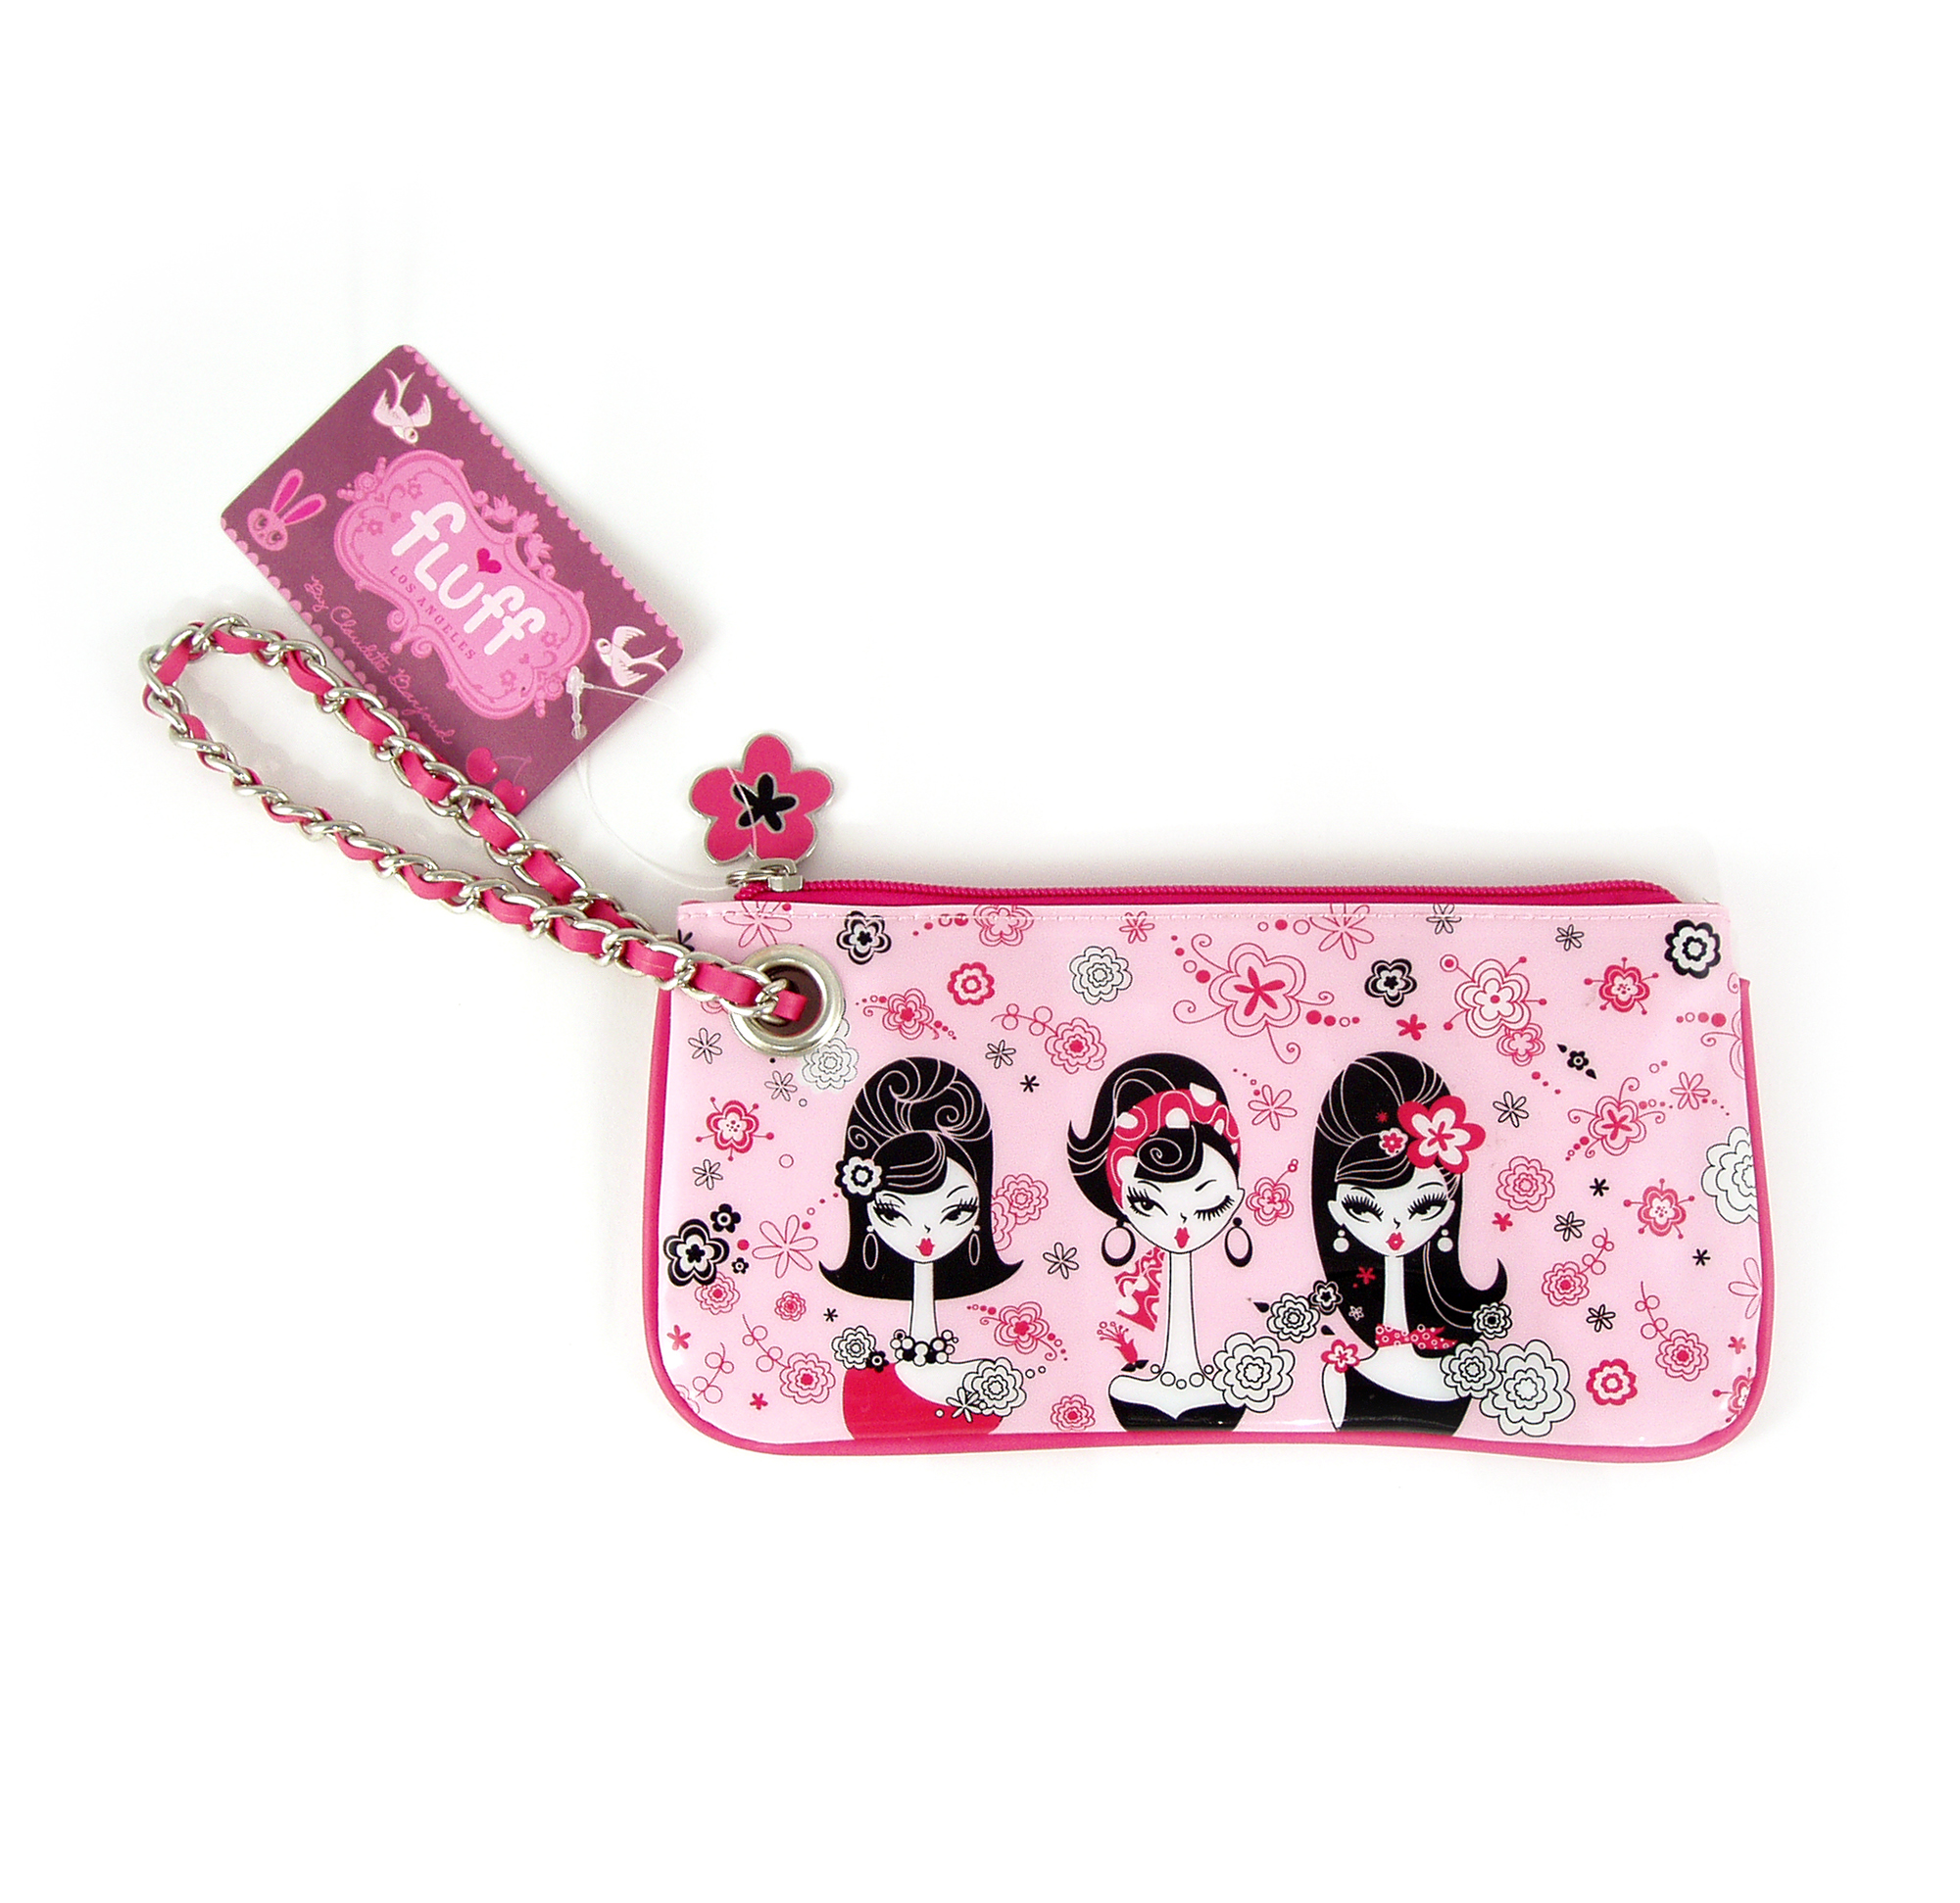 023a663bc385 Chelsea Chick Make Up Clutch by Fluff 5055491400377